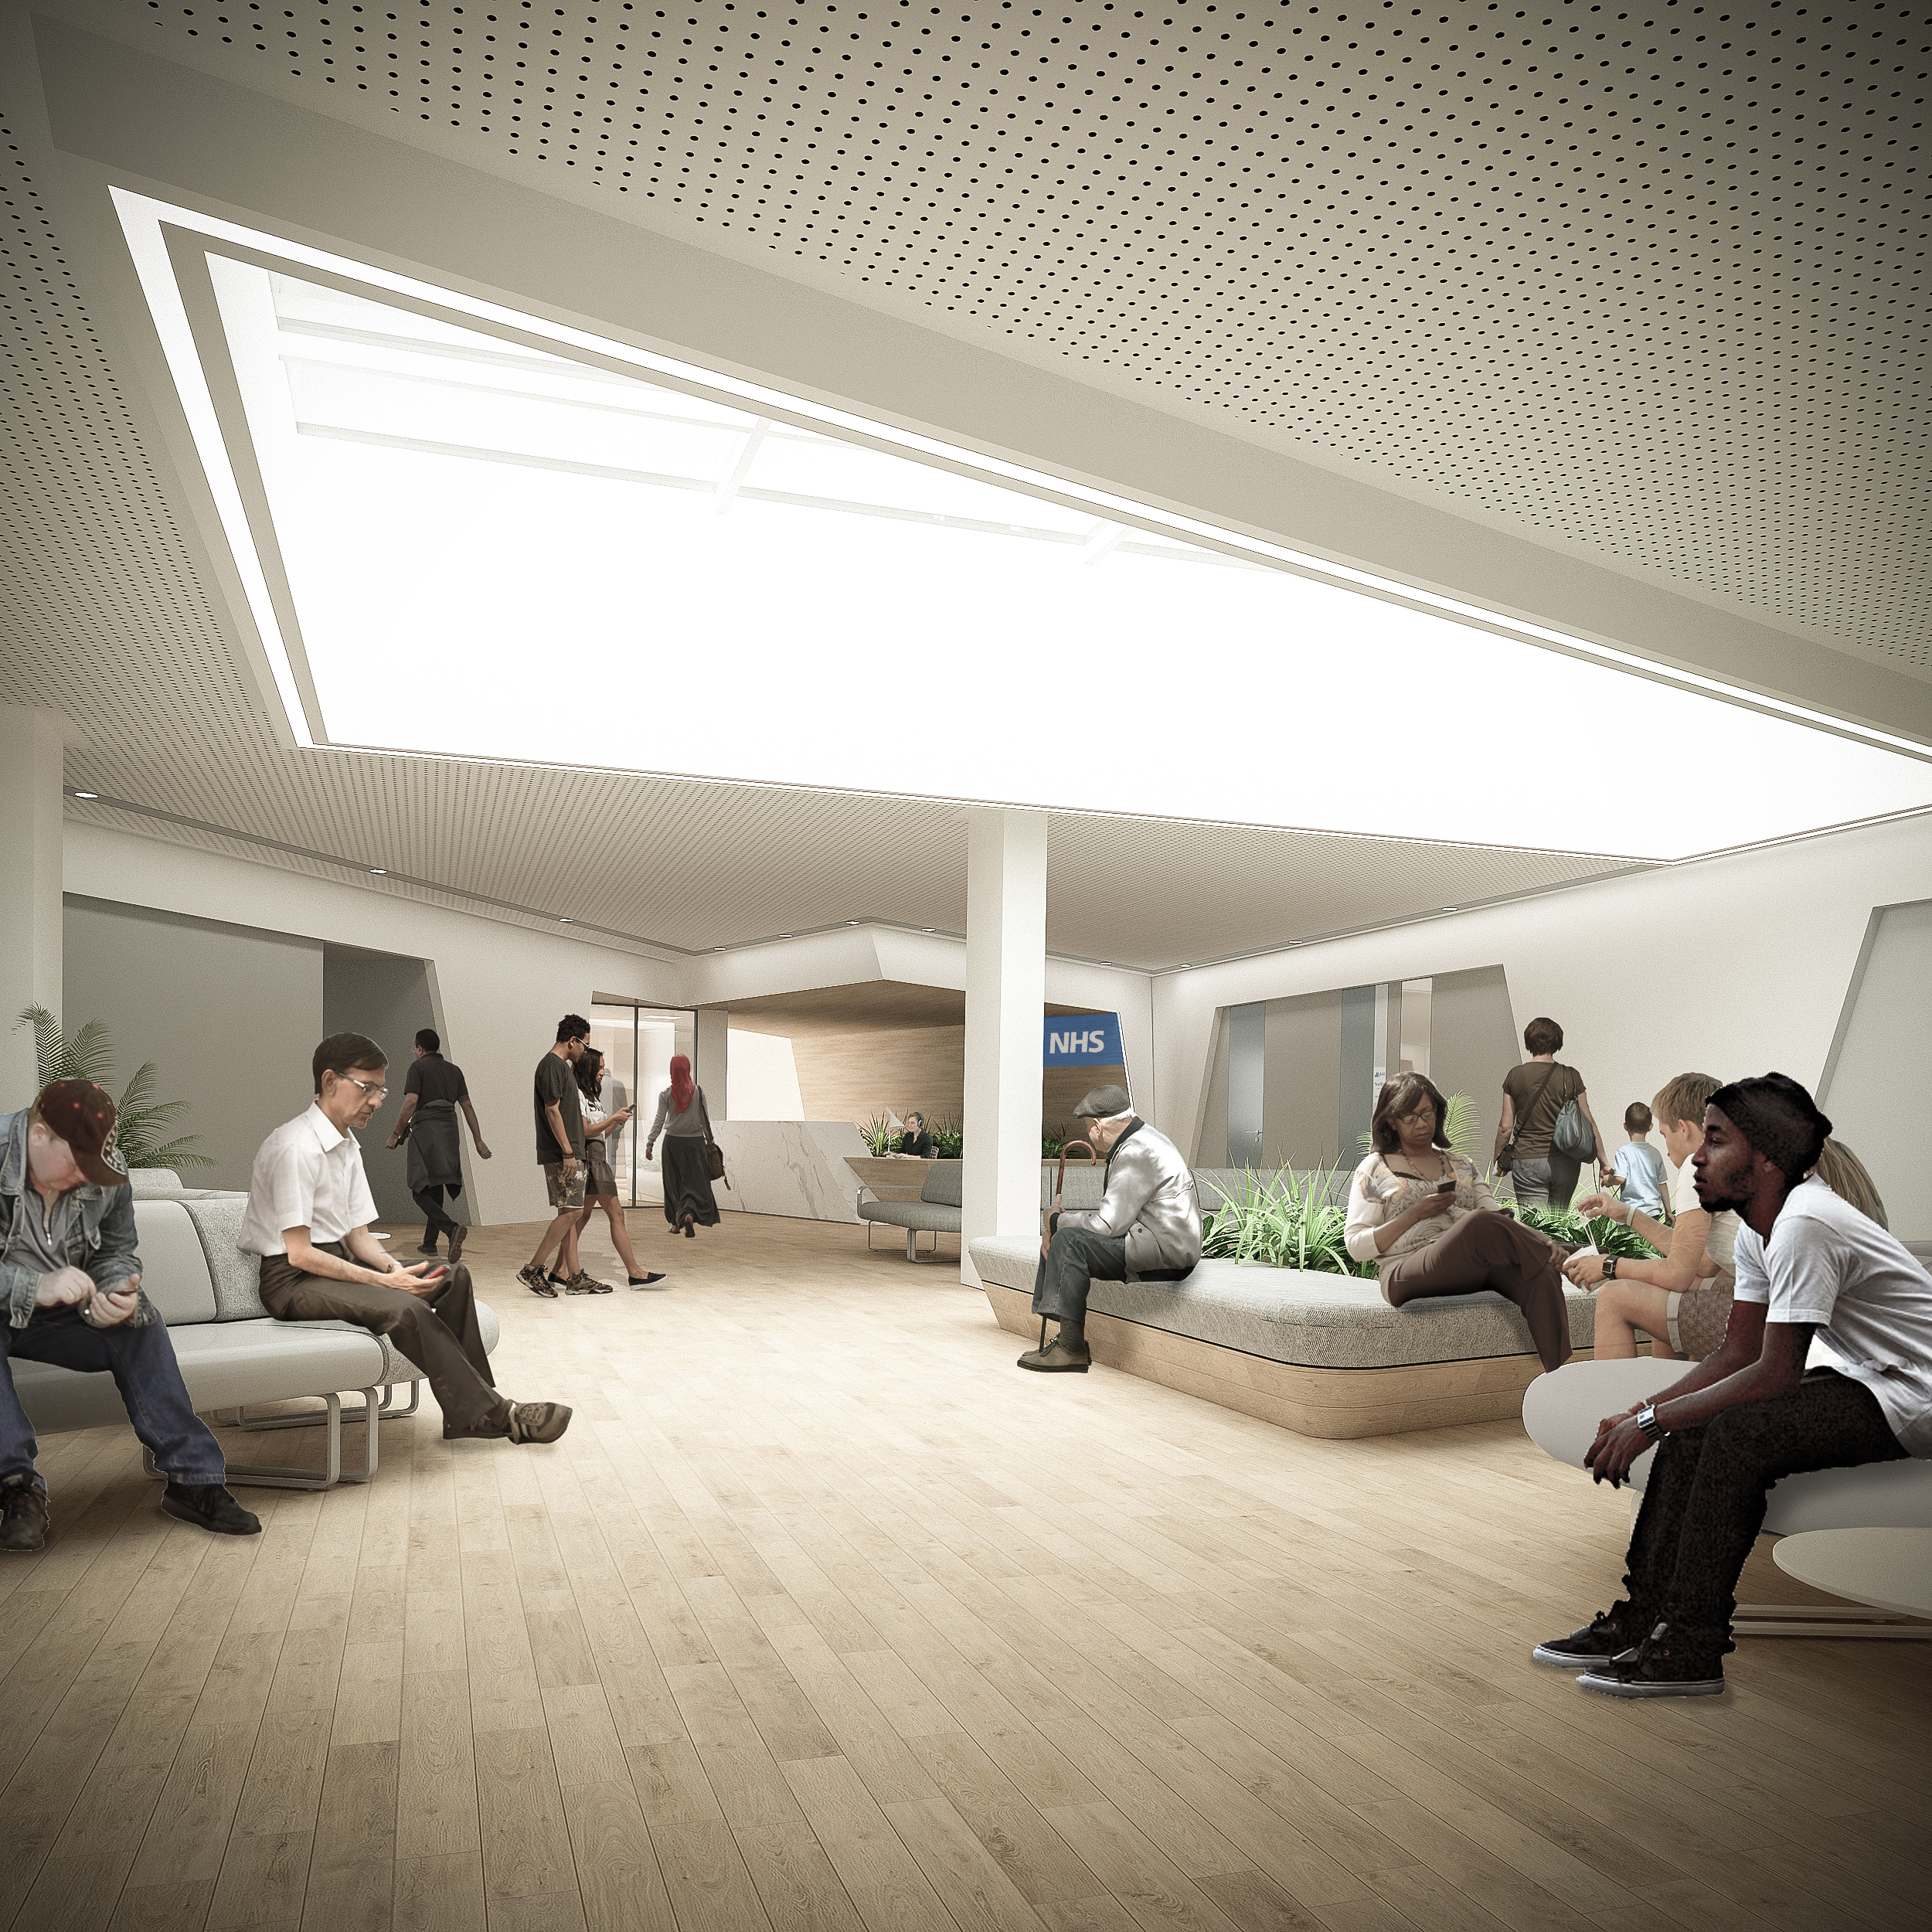 £13m funding agreed for new Nine Elms NHS health centre